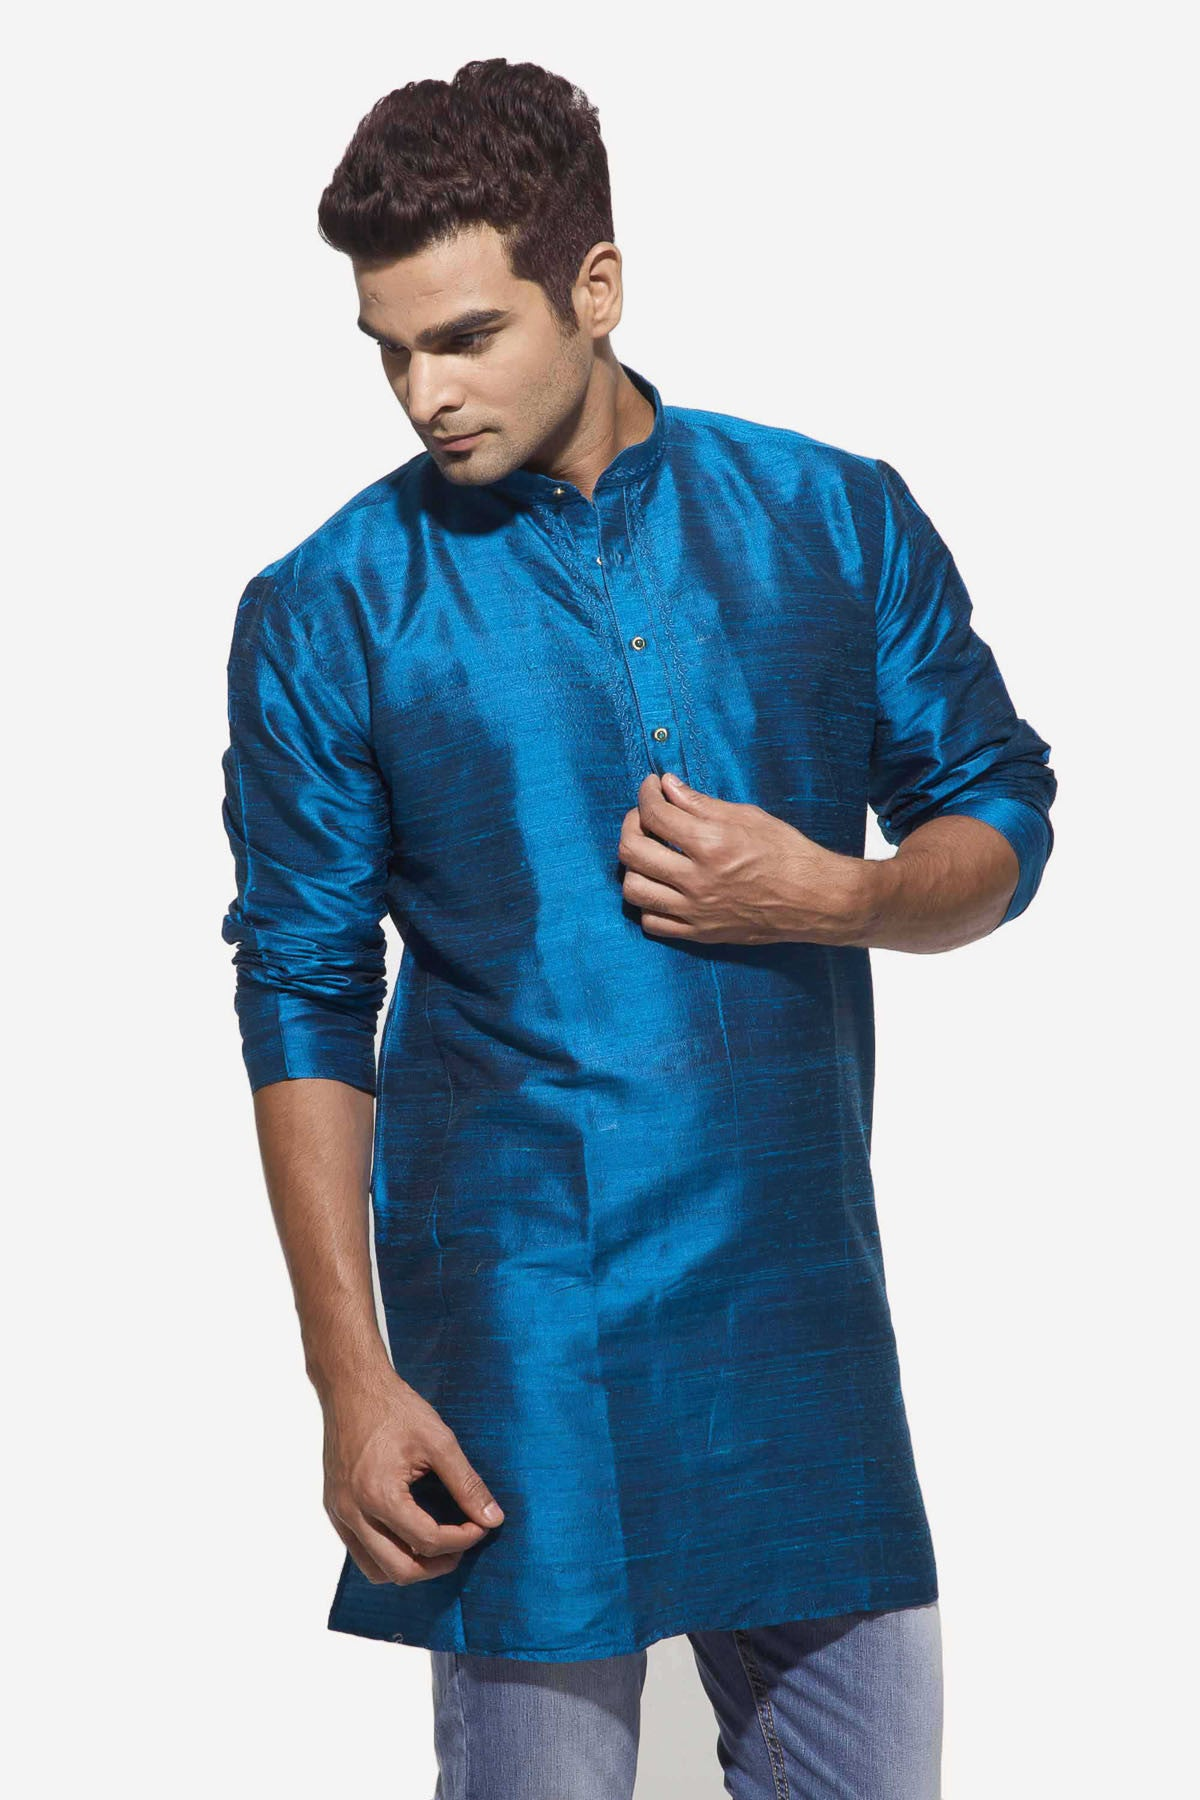 ce905197fcefa6 Men's Peacock Blue Party Plain Dupioni Silk Kurta – Dennis Morton ...